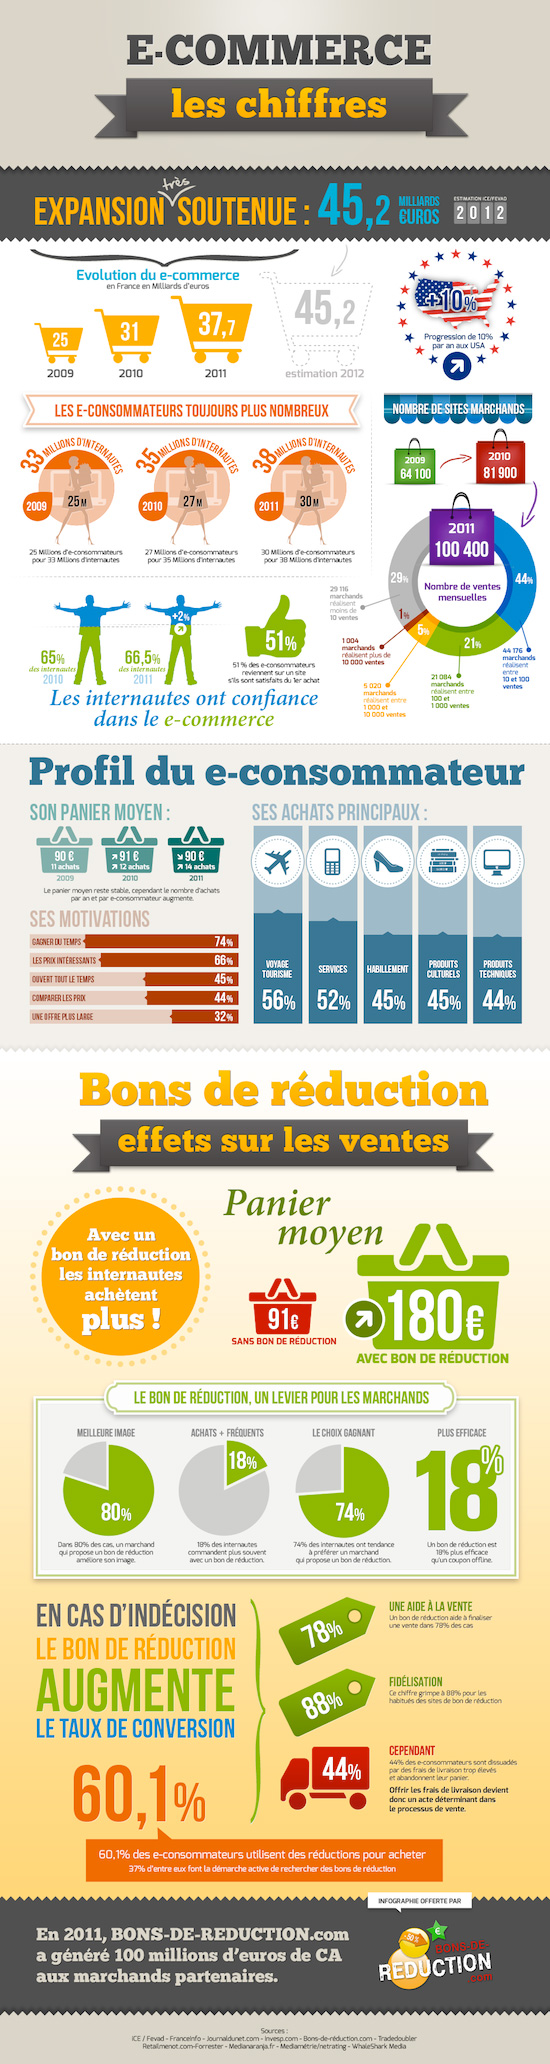 Infographie-ecommerce